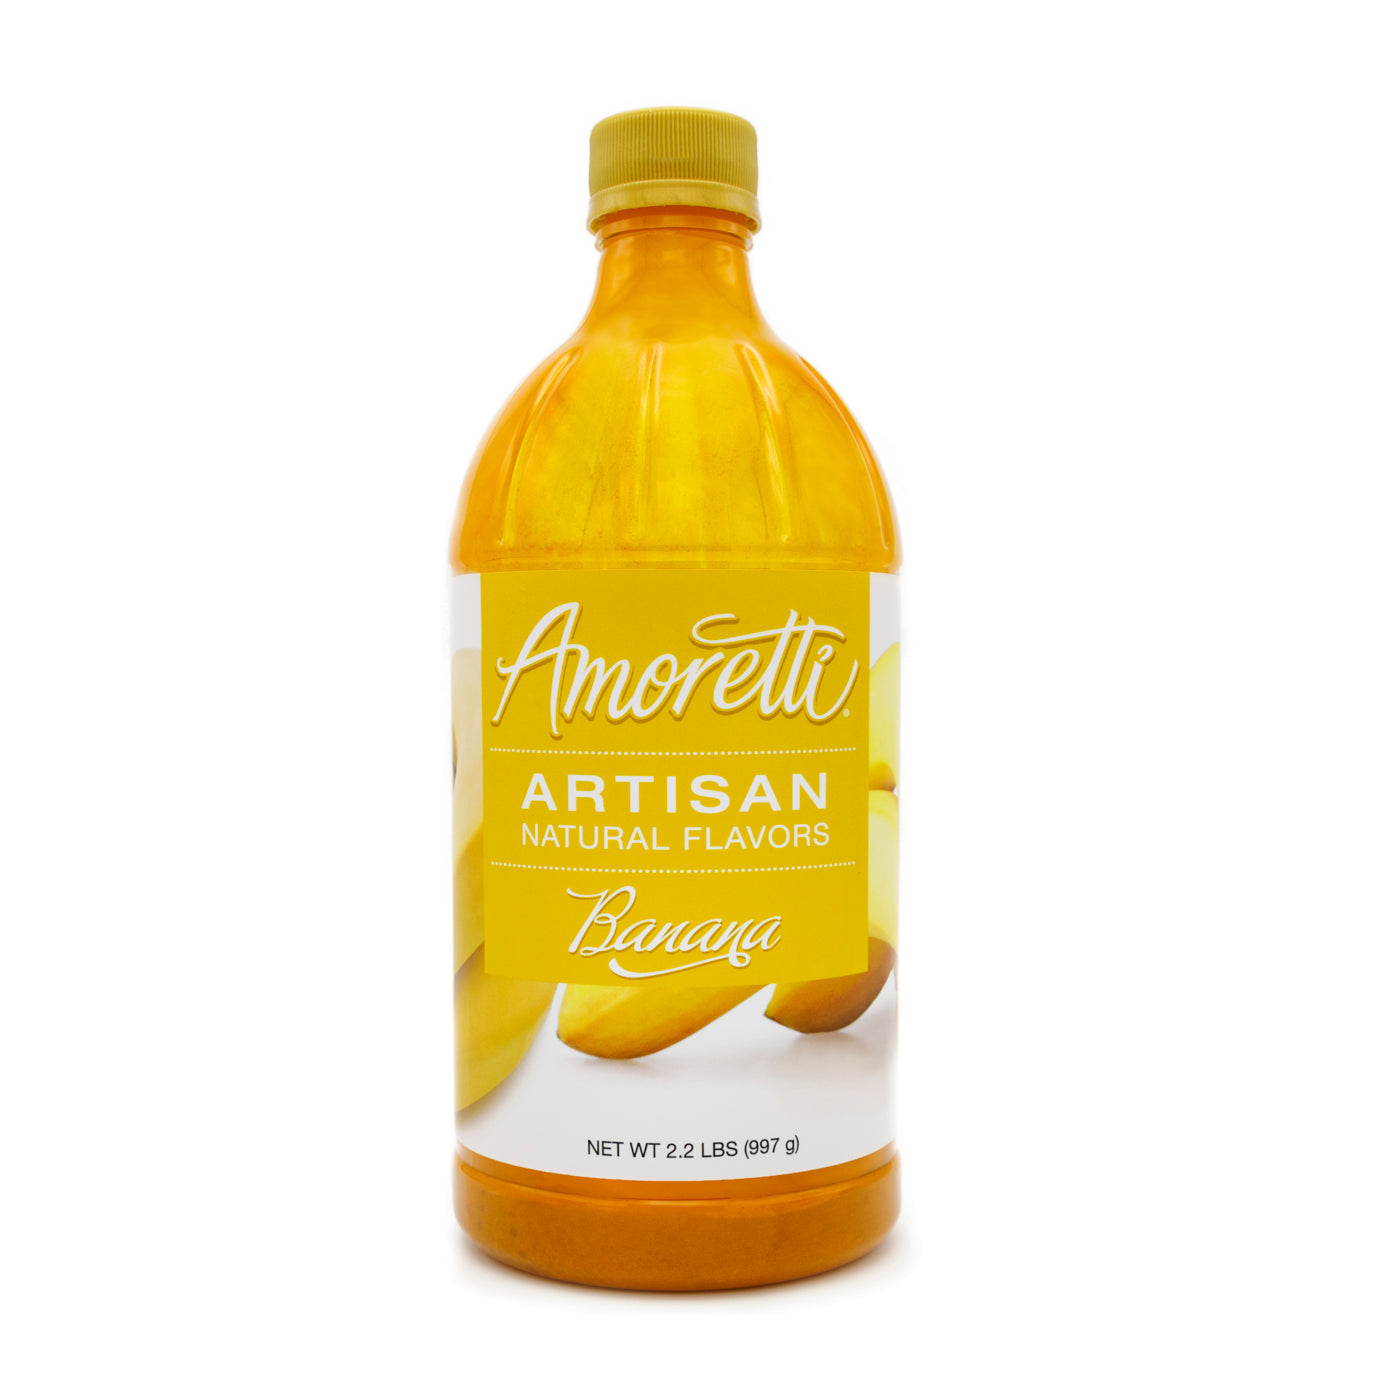 Amoretti's Natural Banana Artisan is the easiest way for adding the flavor and aroma of fresh, ripe bananas into your recipes.